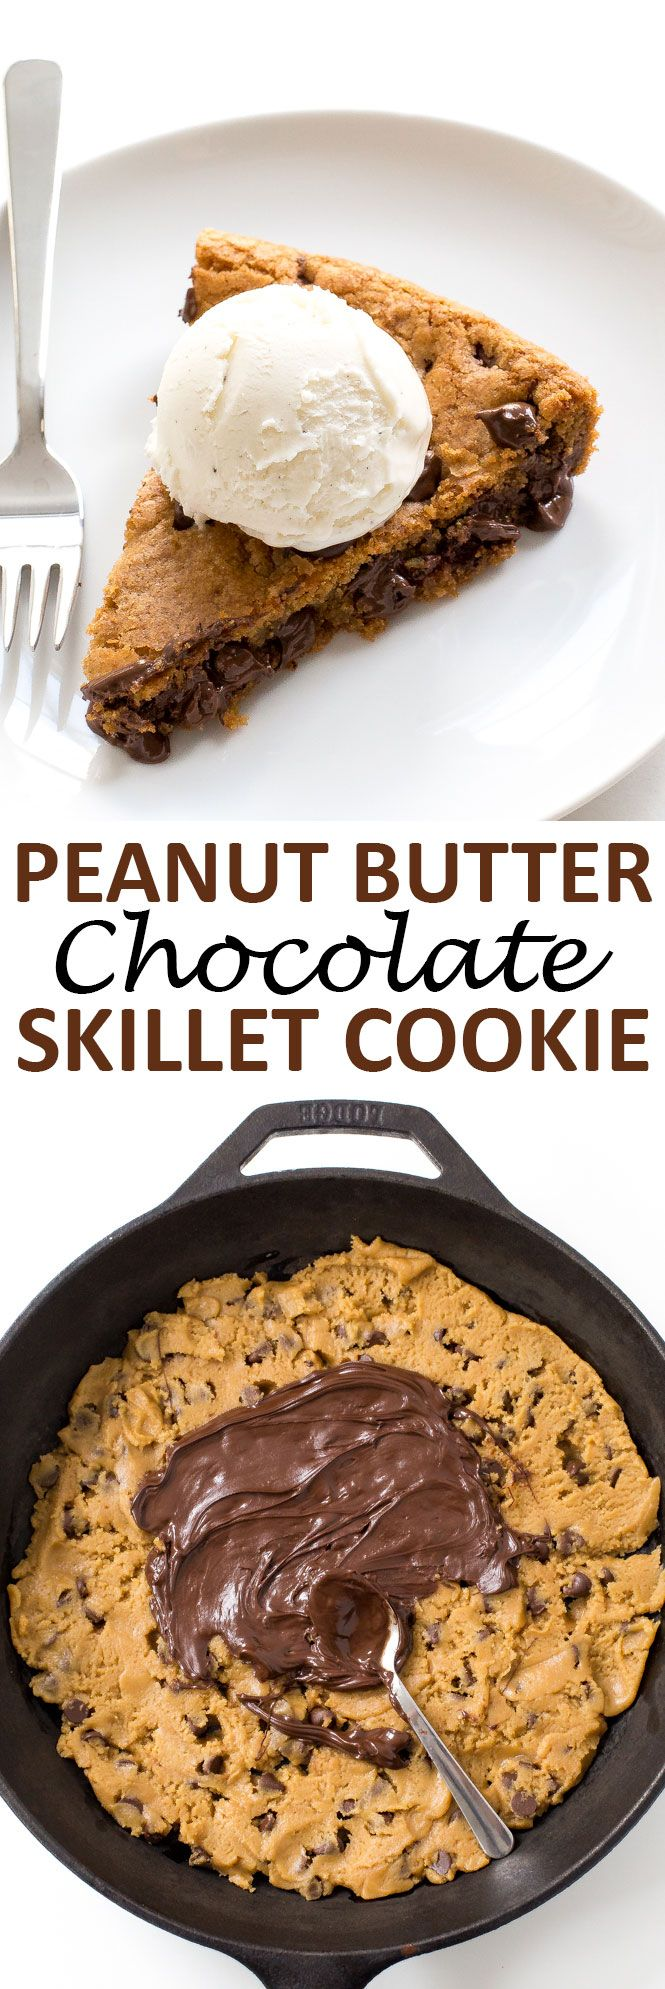 Peanut Butter Chocolate Skillet Cookie. Firm around the edges and soft and gooey…